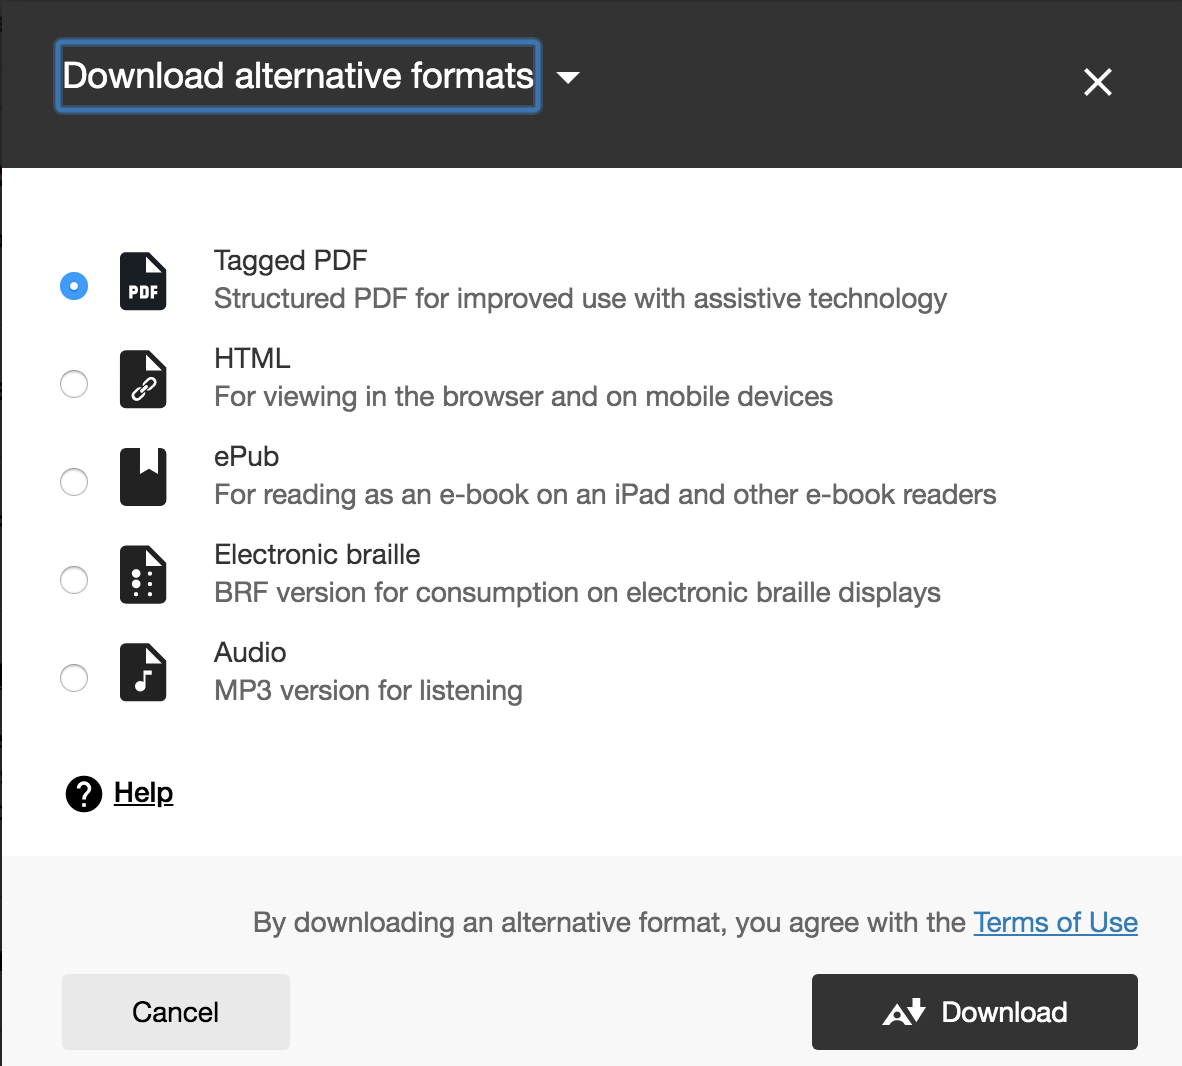 List of alternative formats include tagged pdf, HTML, ePub, Electronic braille and audio